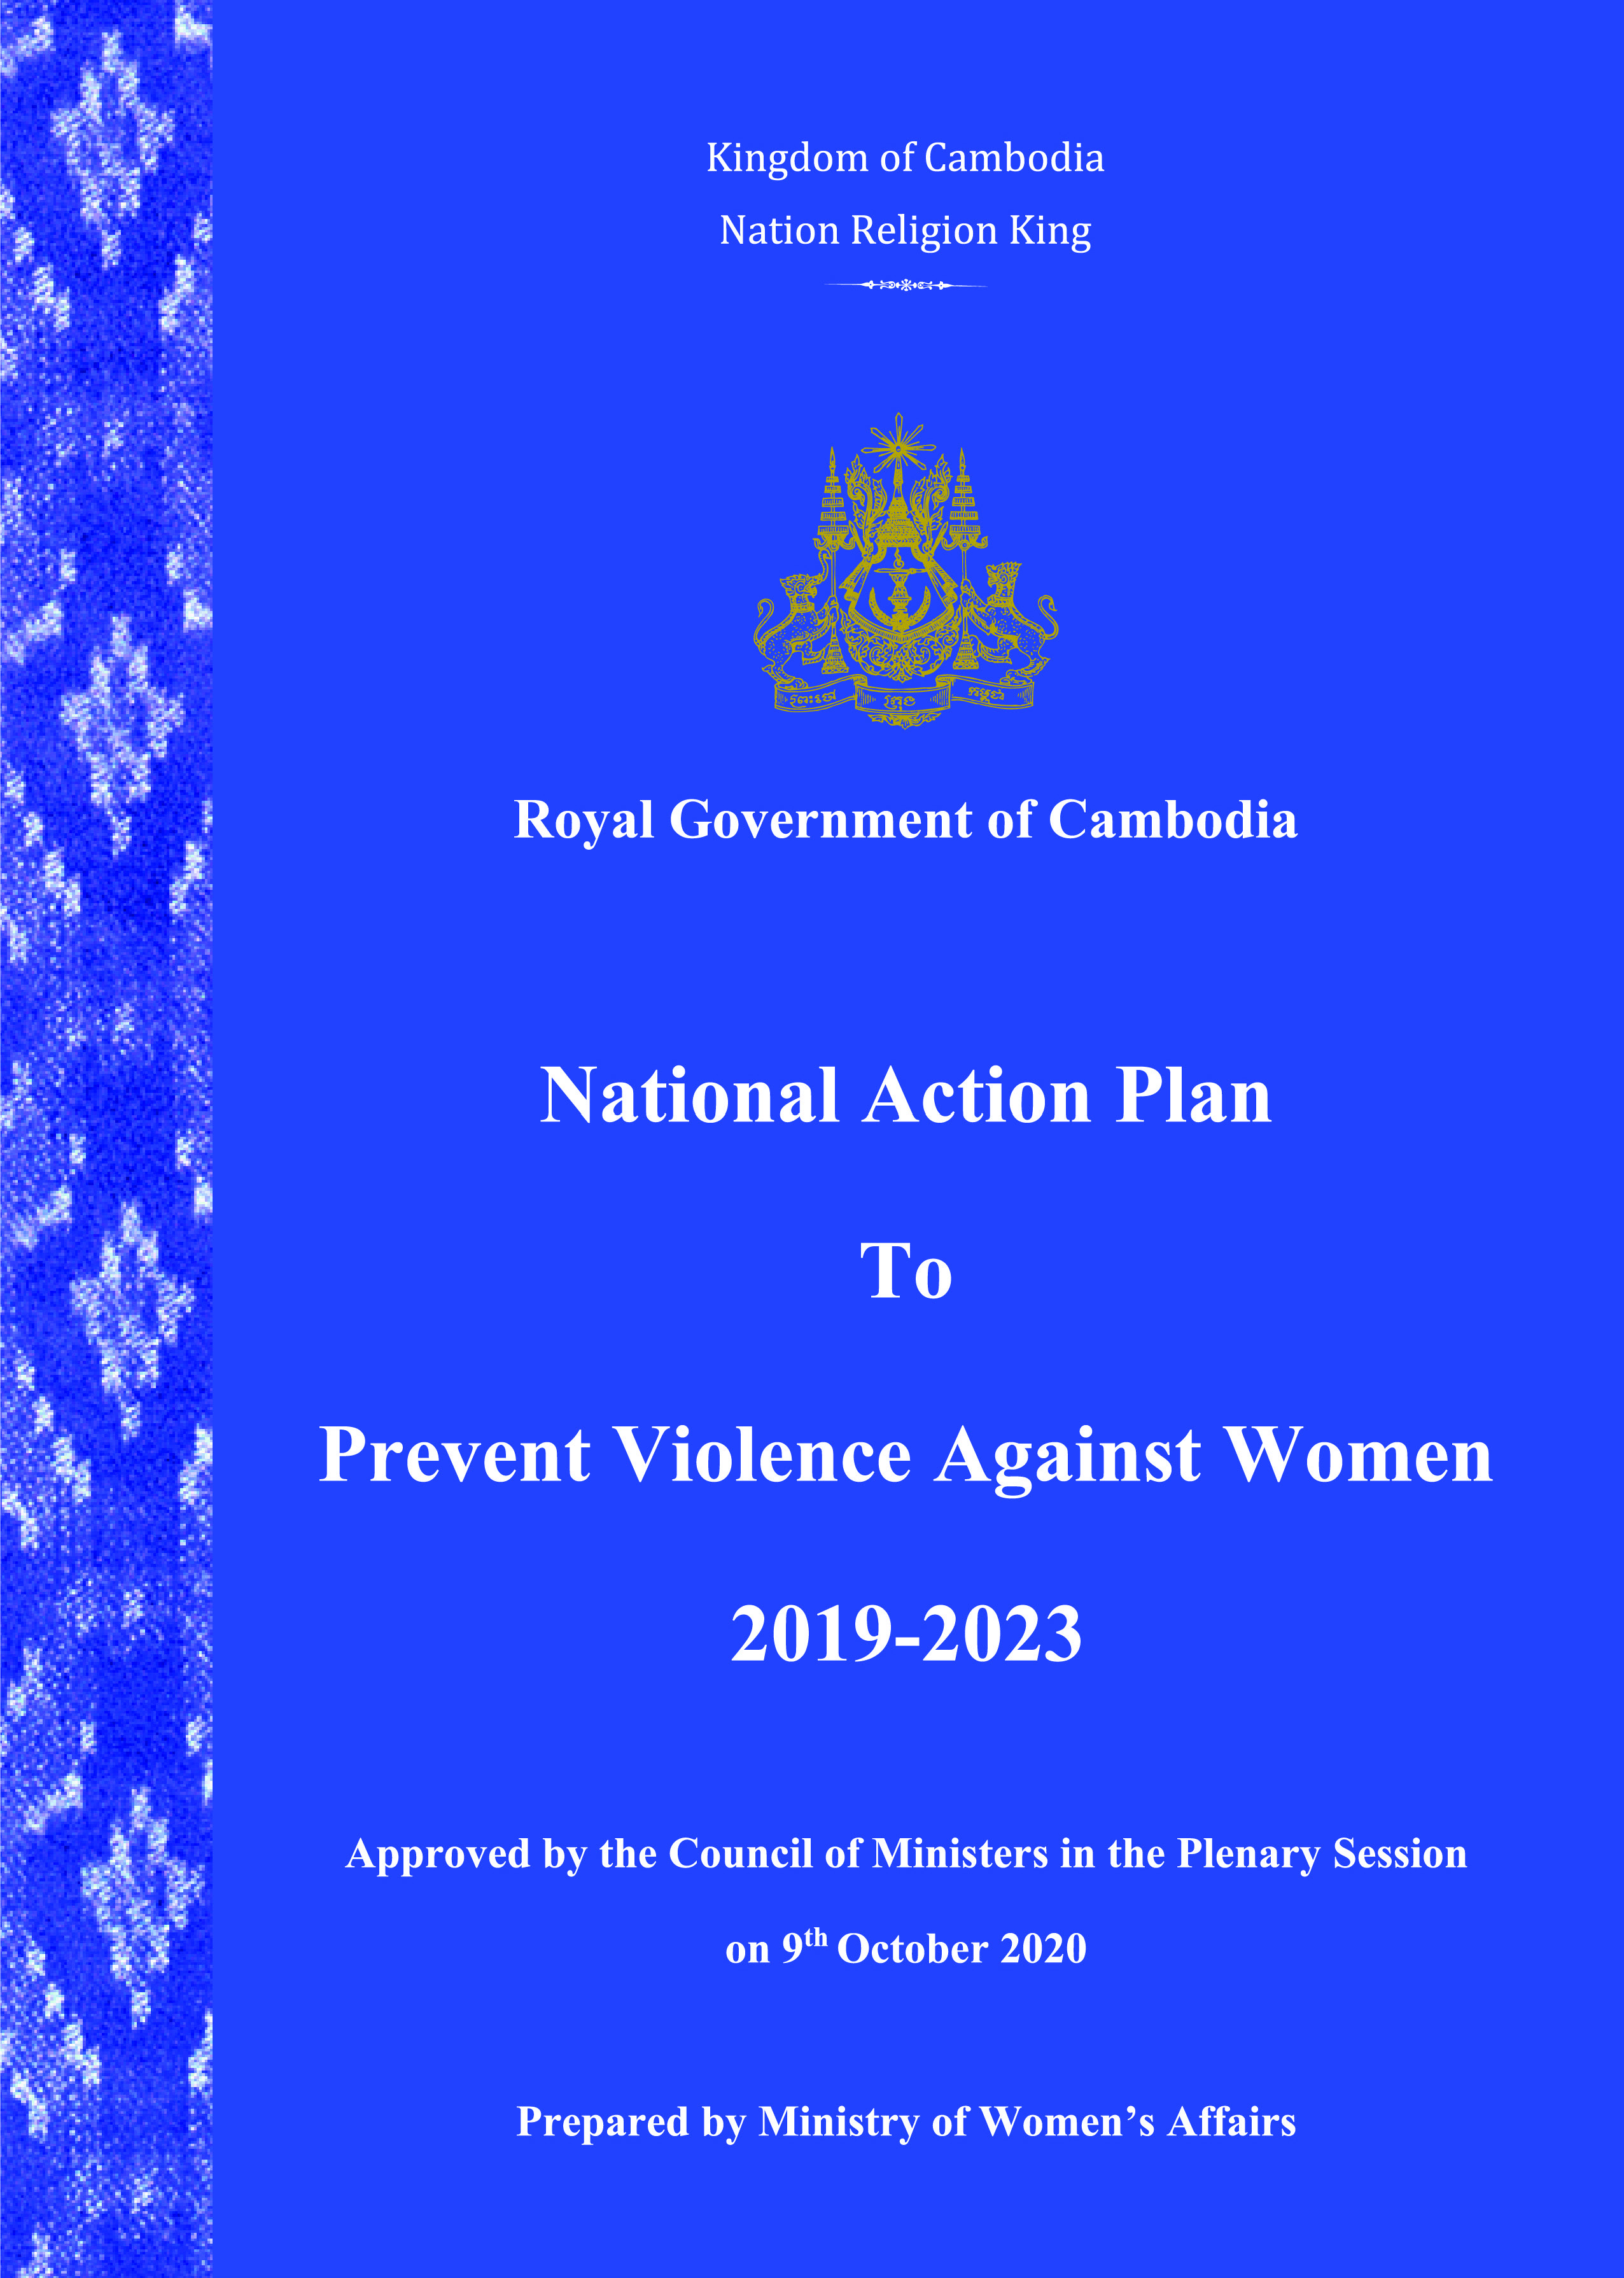 National Action Plan to Prevent Violence Against Women 2019-2023